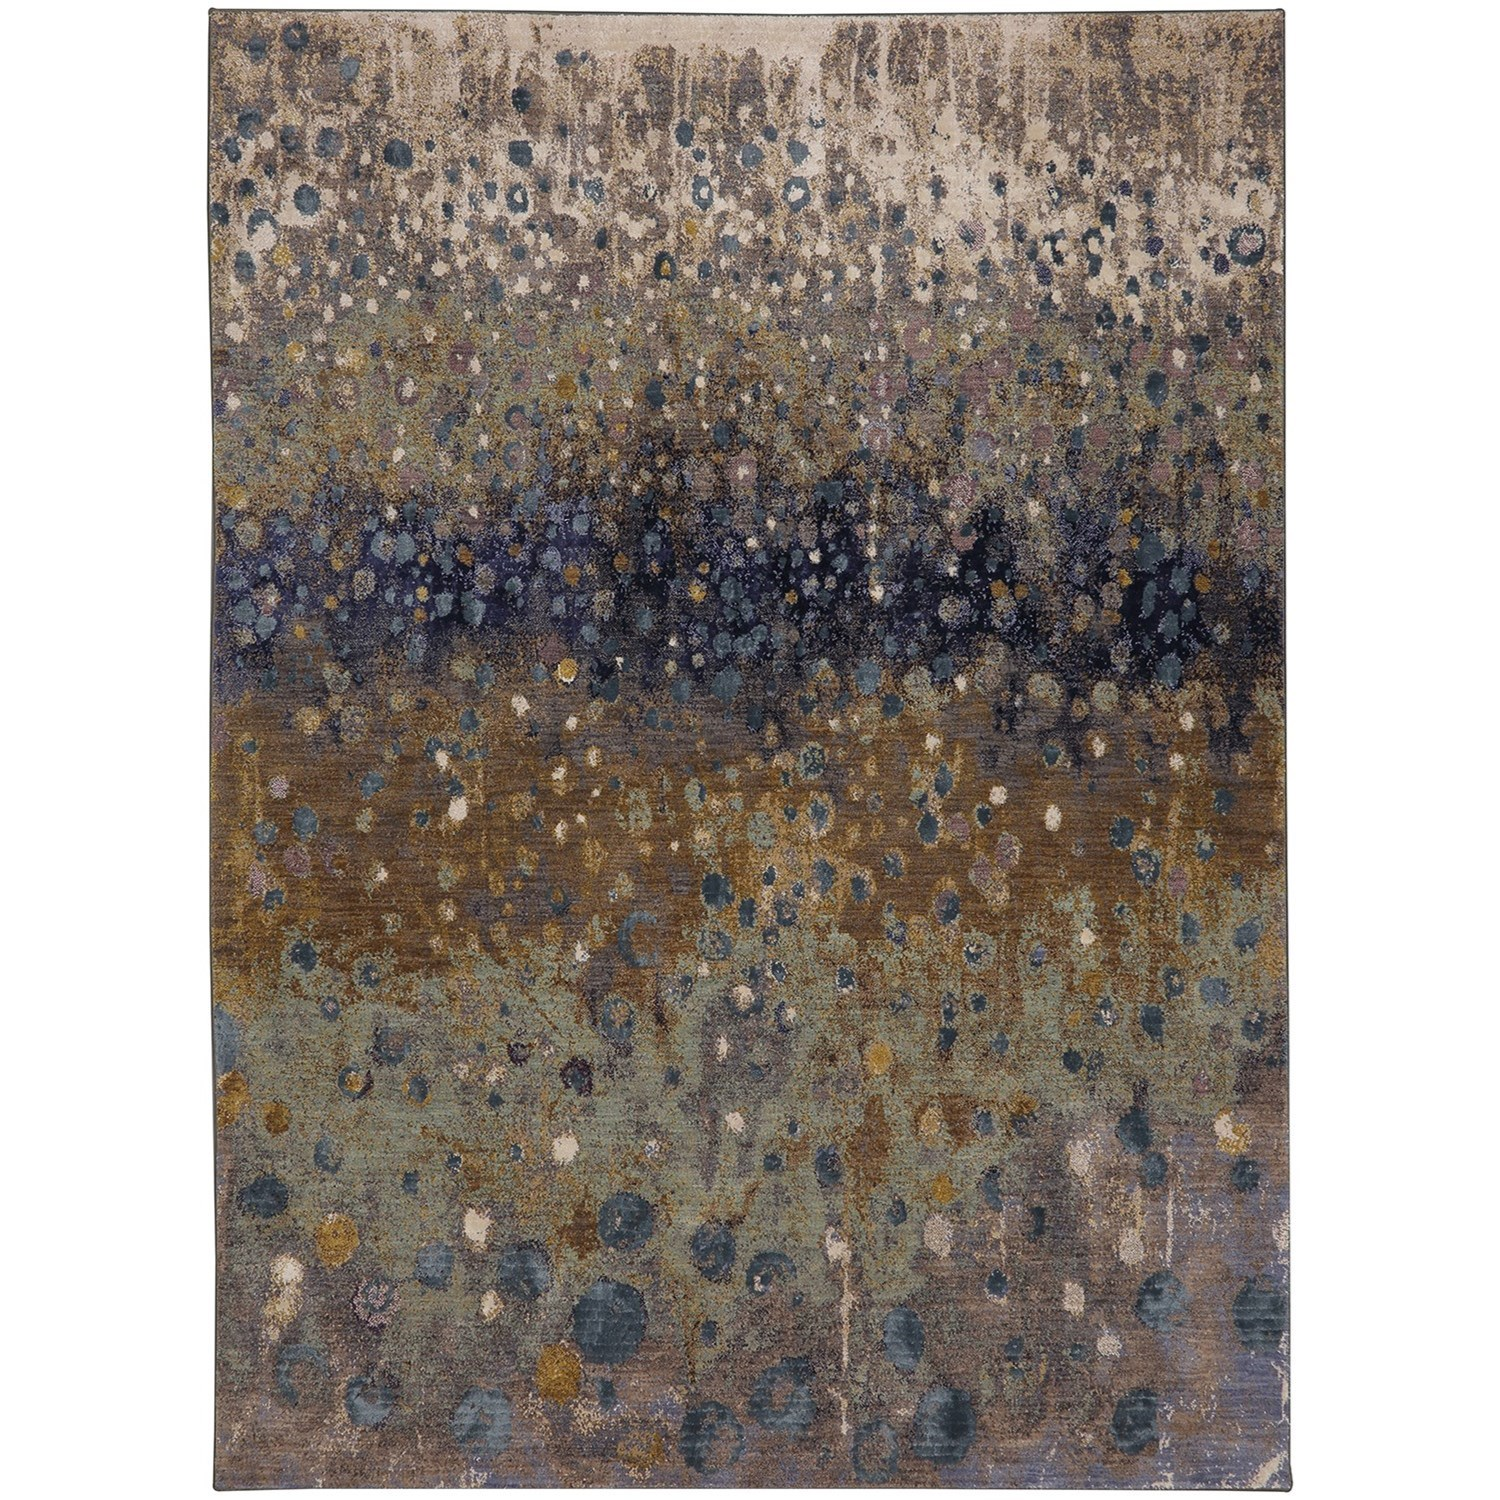 "Enigma 9' 6""x12' 11"" Rectangle Abstract Area Rug by Karastan Rugs at Darvin Furniture"